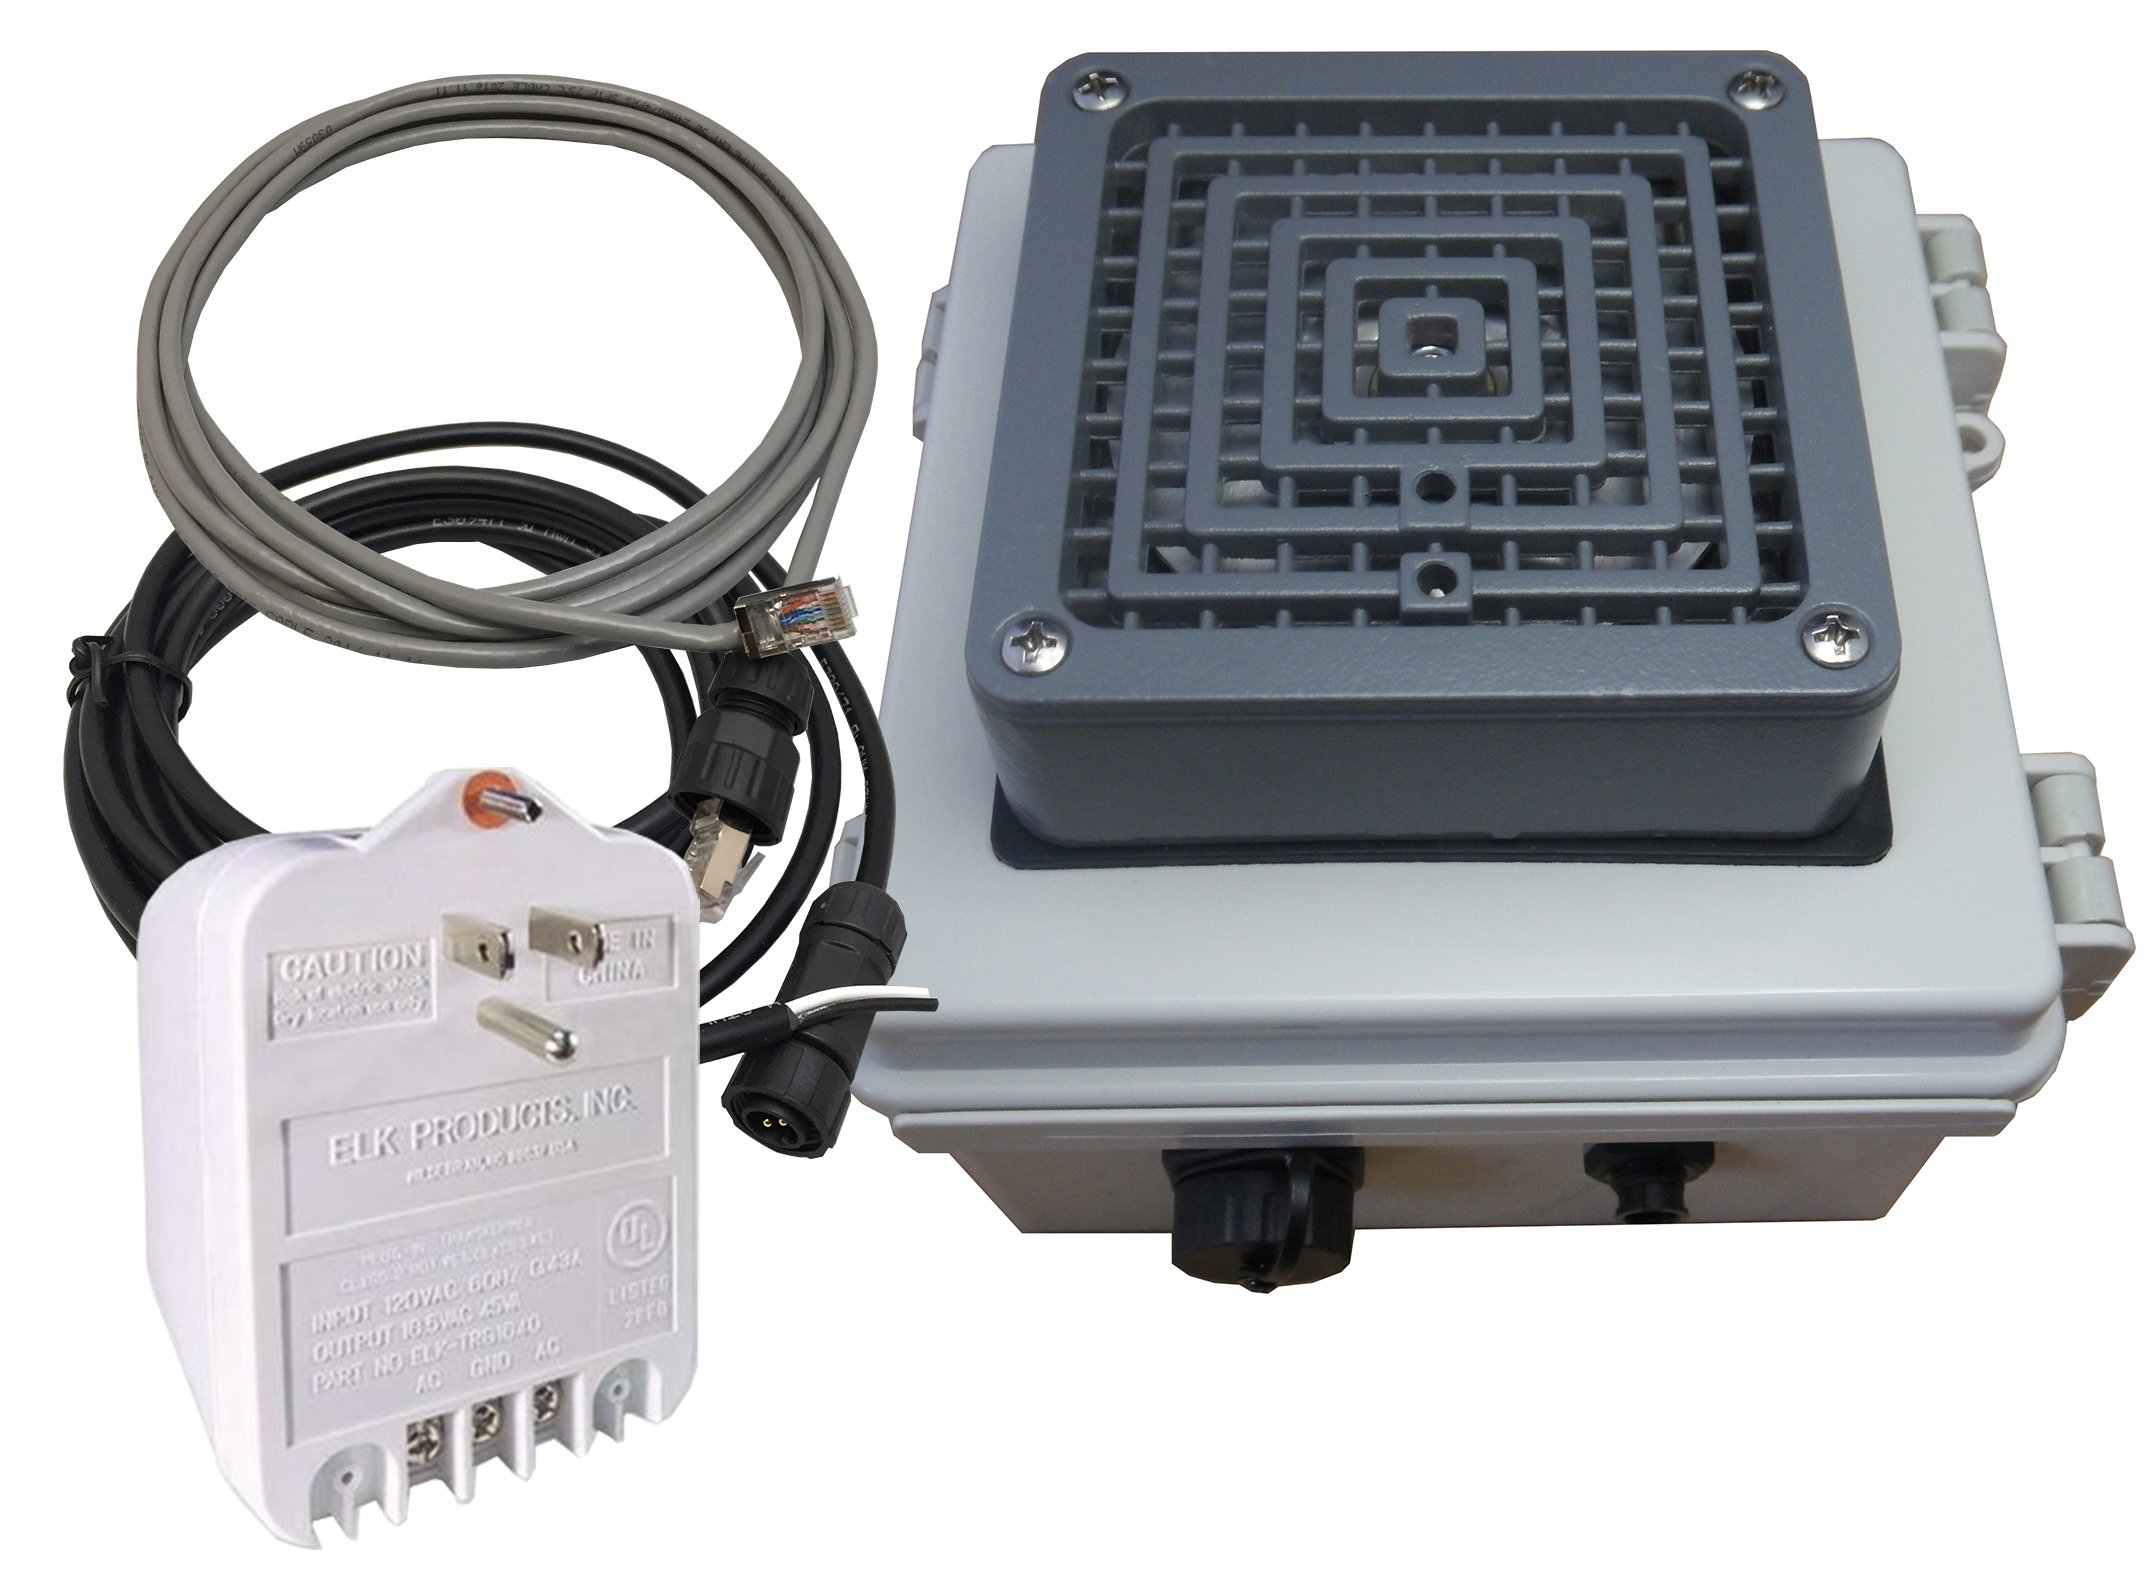 Linortek Netbell-KB Web-Based Self-Contained Break Buzzer System for Industrial Working Areas up to 25,000 sq. ft.